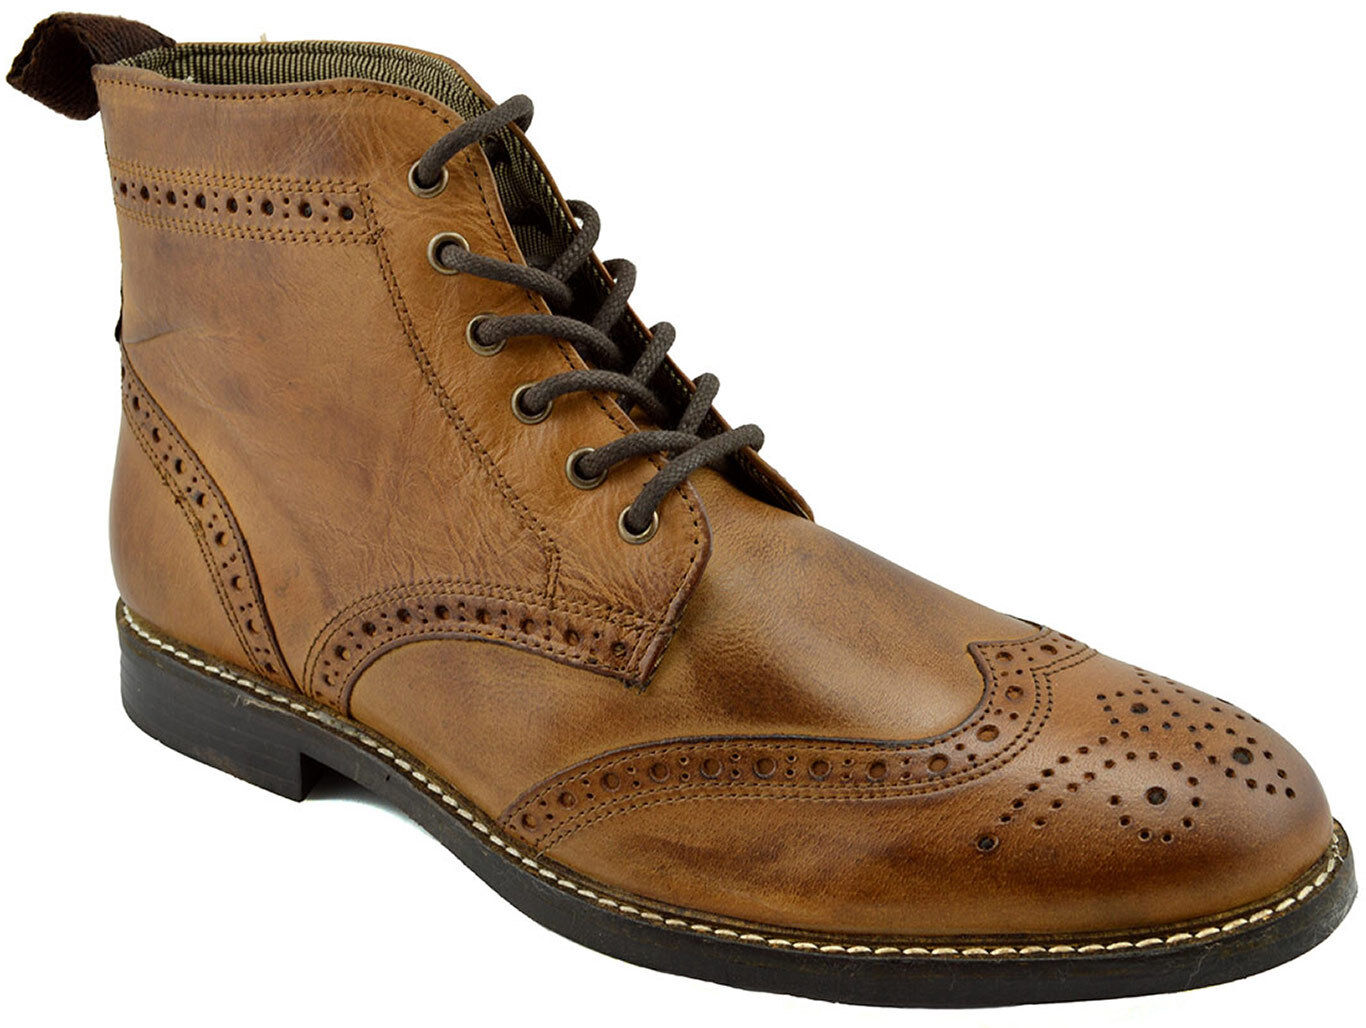 177767ab350580 Details about $215 RED Tape Brown Leather GLAVEN Brogue Ankle Boots Men  Shoes NEW COLLECTION